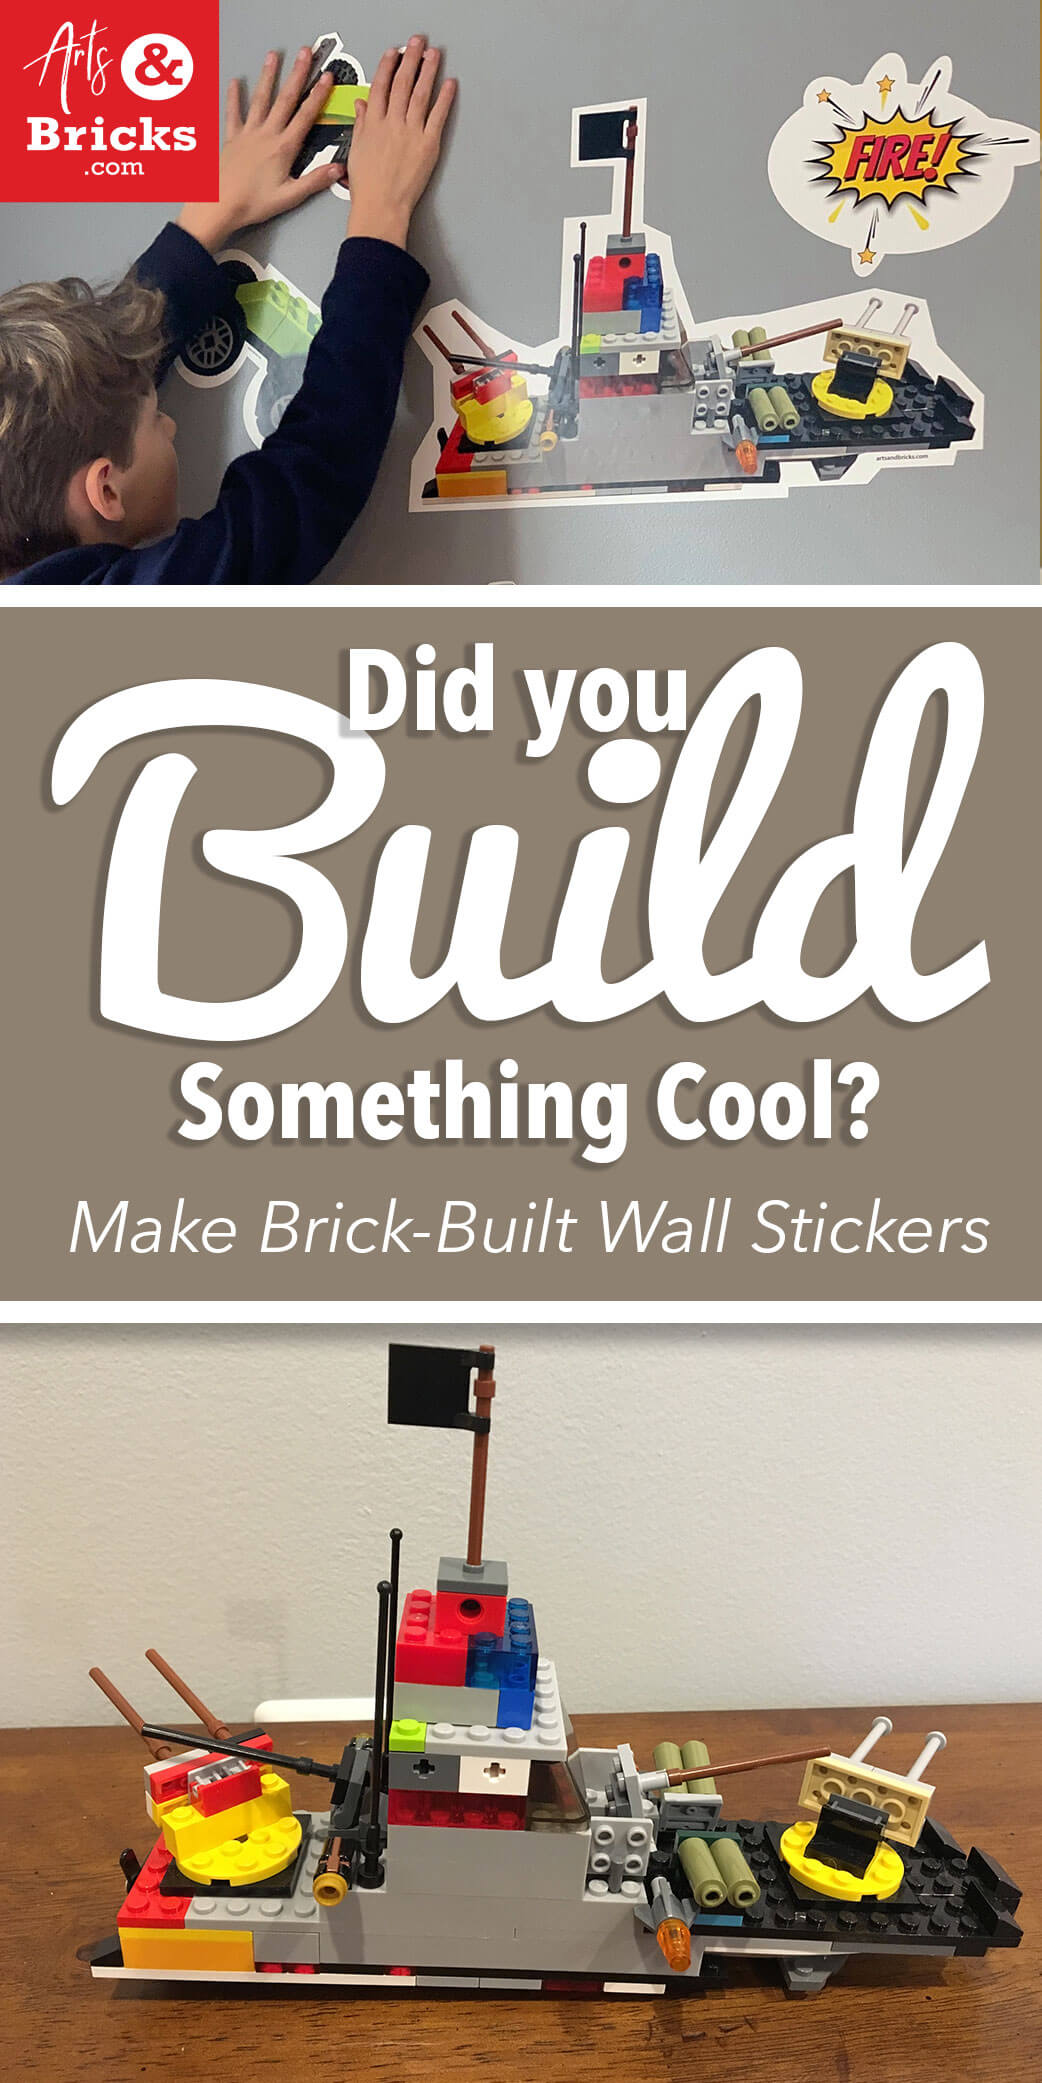 Did you build something cool with LEGO bricks? Turn them into kids wall decor with Arts and Bricks's design-it-yourself brick-built wall stickers.